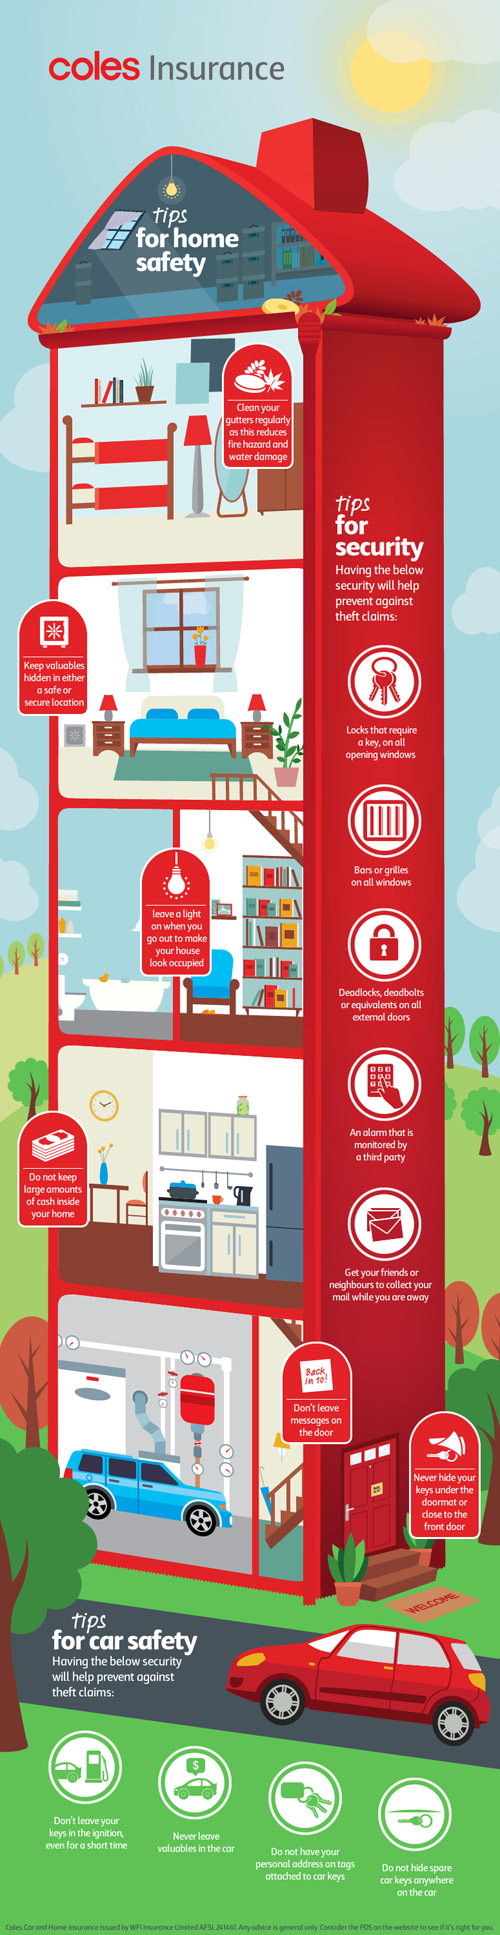 Coles Insurance_ Infographic